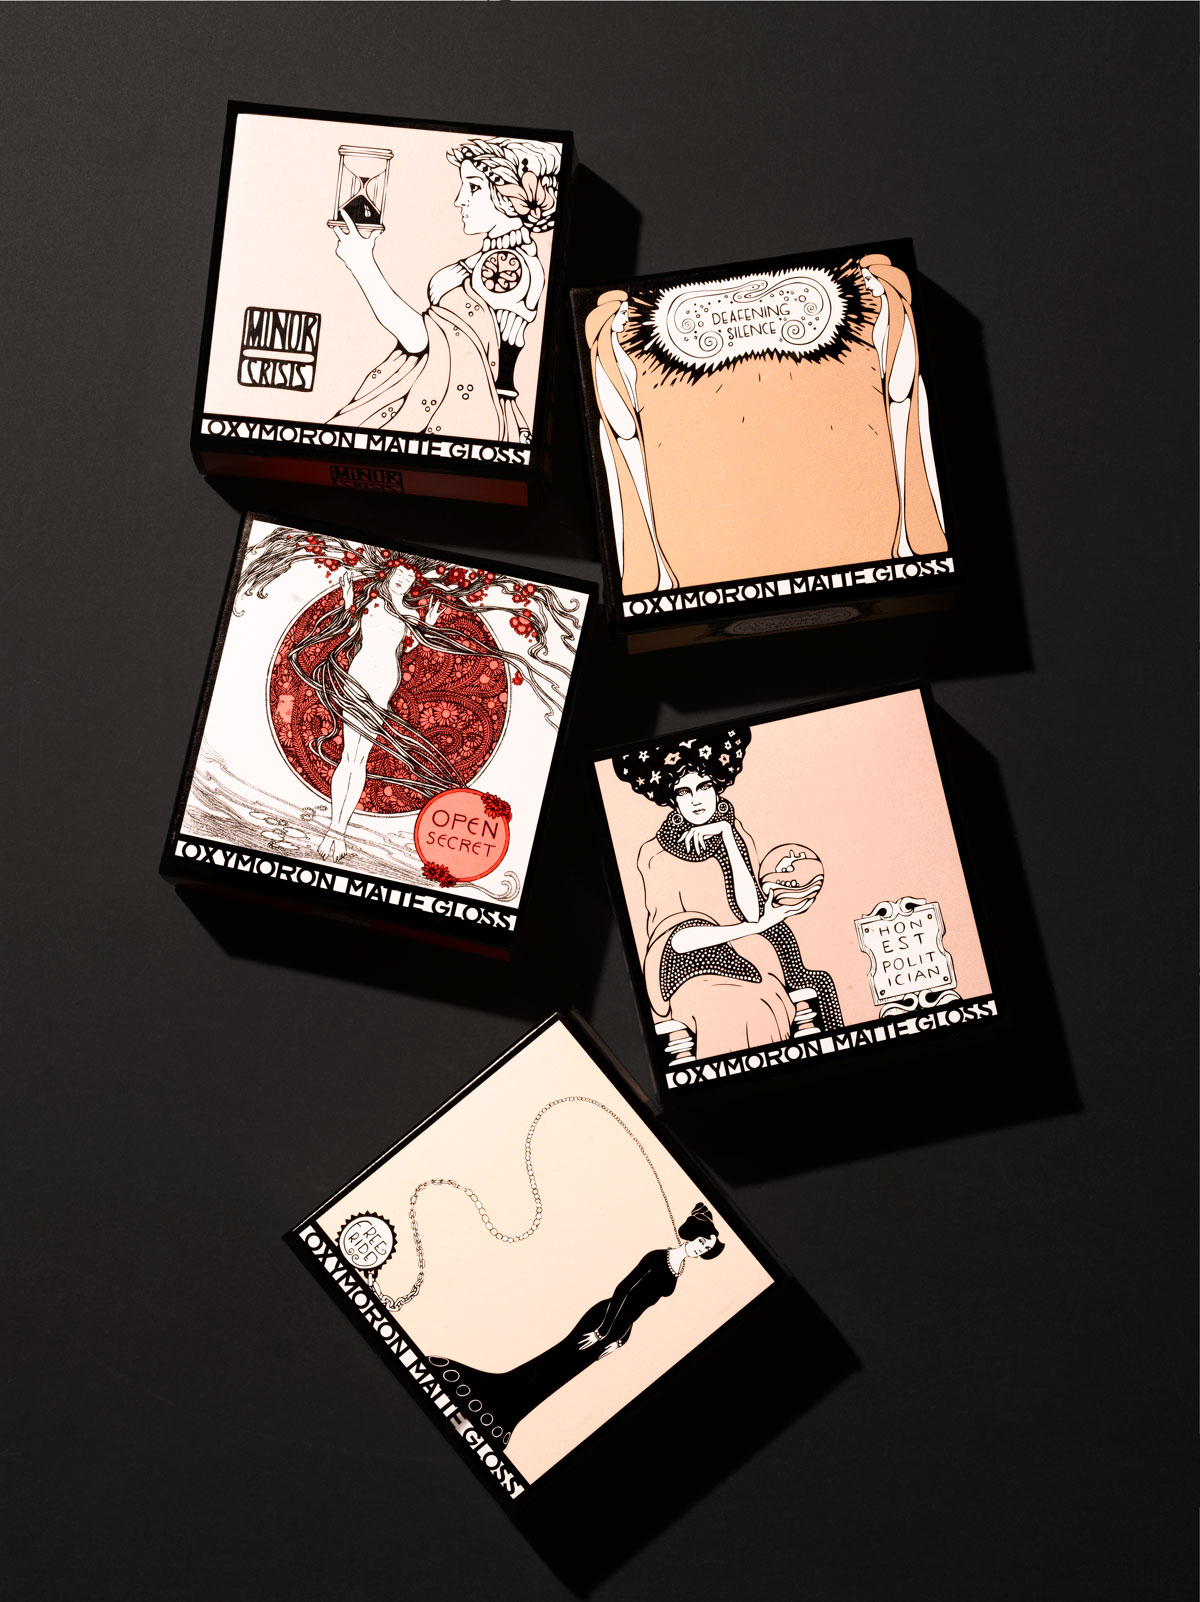 Hand Drawn Illustrations for Luxury Beauty and Cosmetics Brand Lipstick Queen. Packaging Design and Custom Lifework Illustrations by James Benard of Benard Creative.